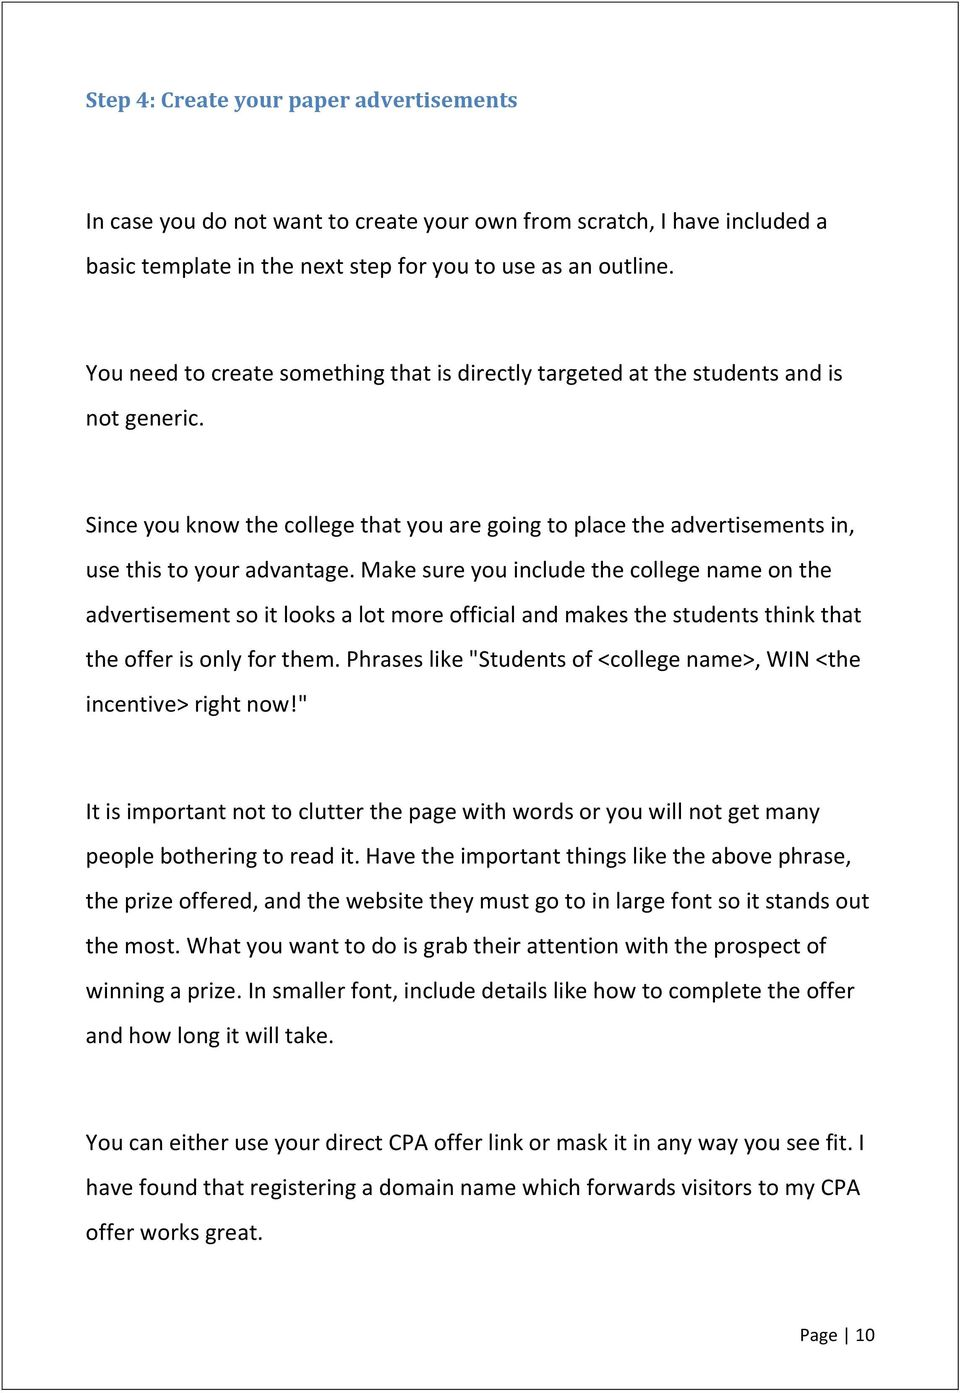 Make sure you include the college name on the advertisement so it looks a lot more official and makes the students think that the offer is only for them.